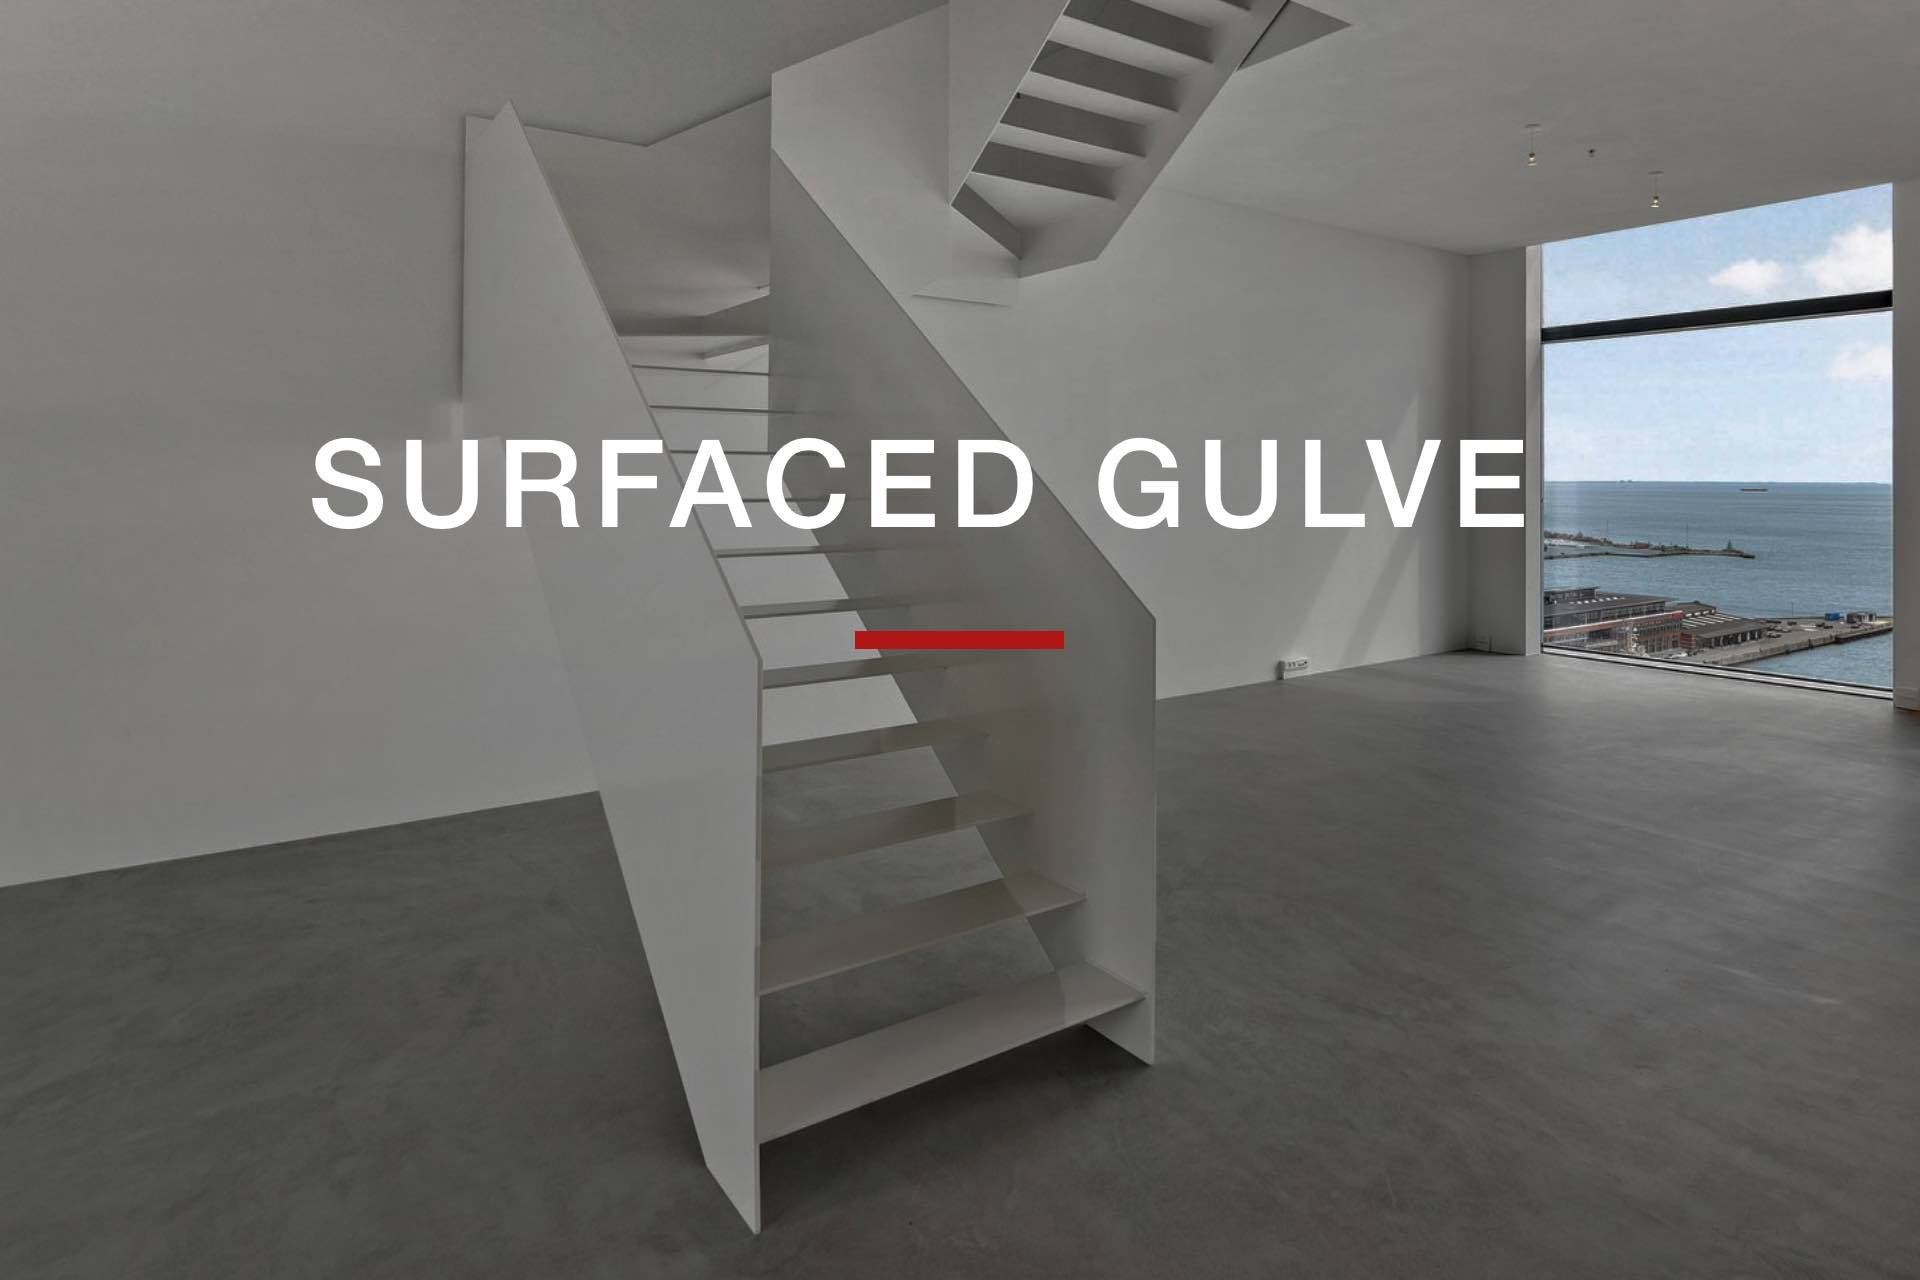 SURFACED GULVE